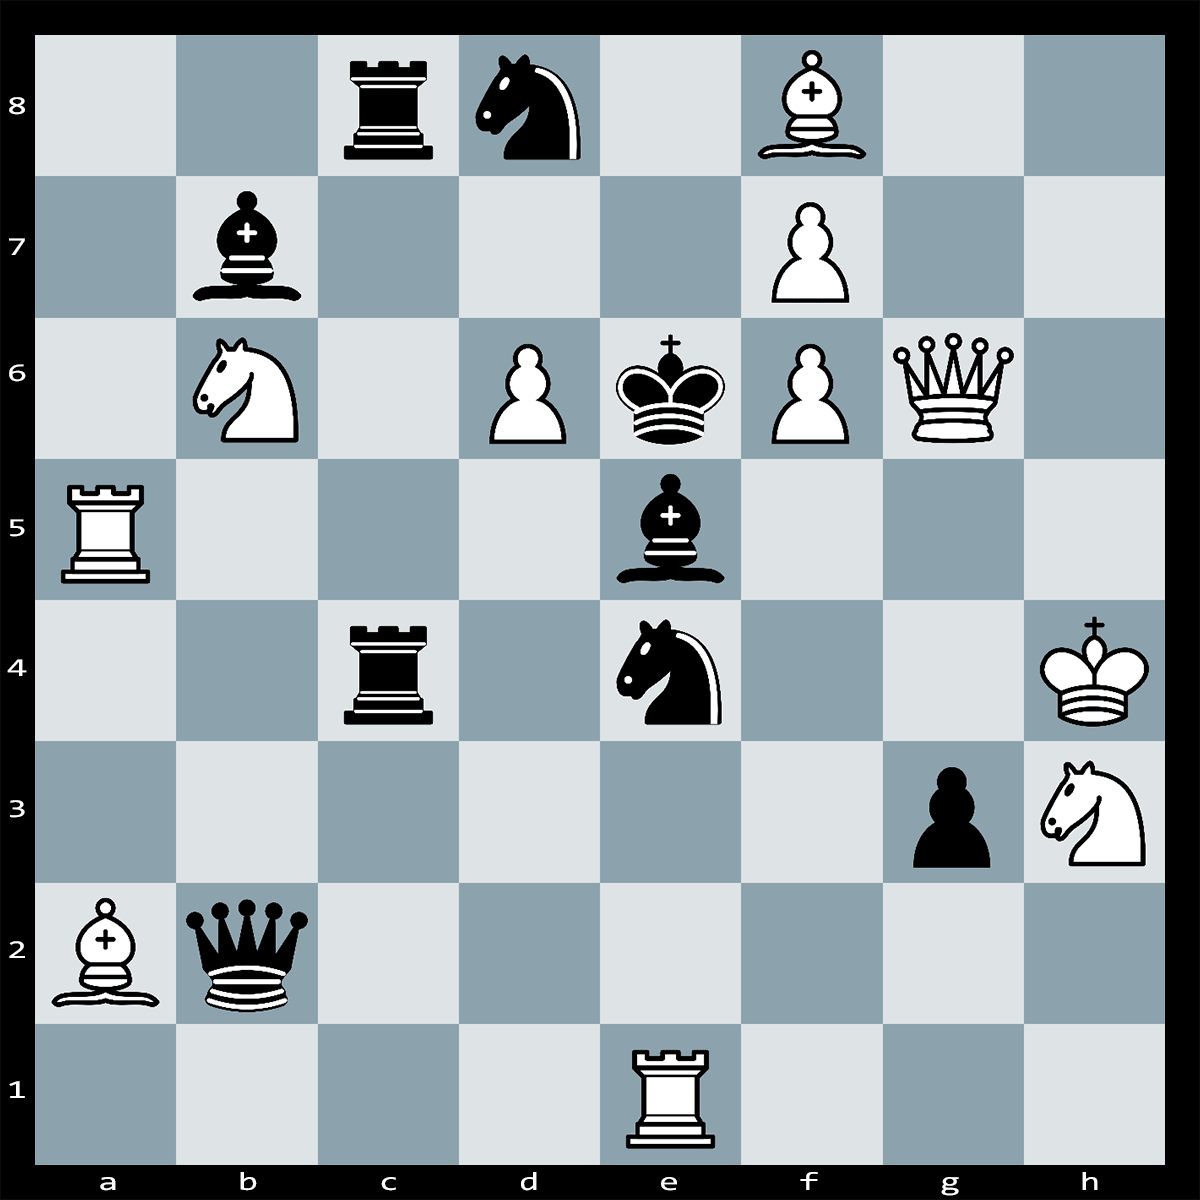 Mate in 2 Moves, White to Play